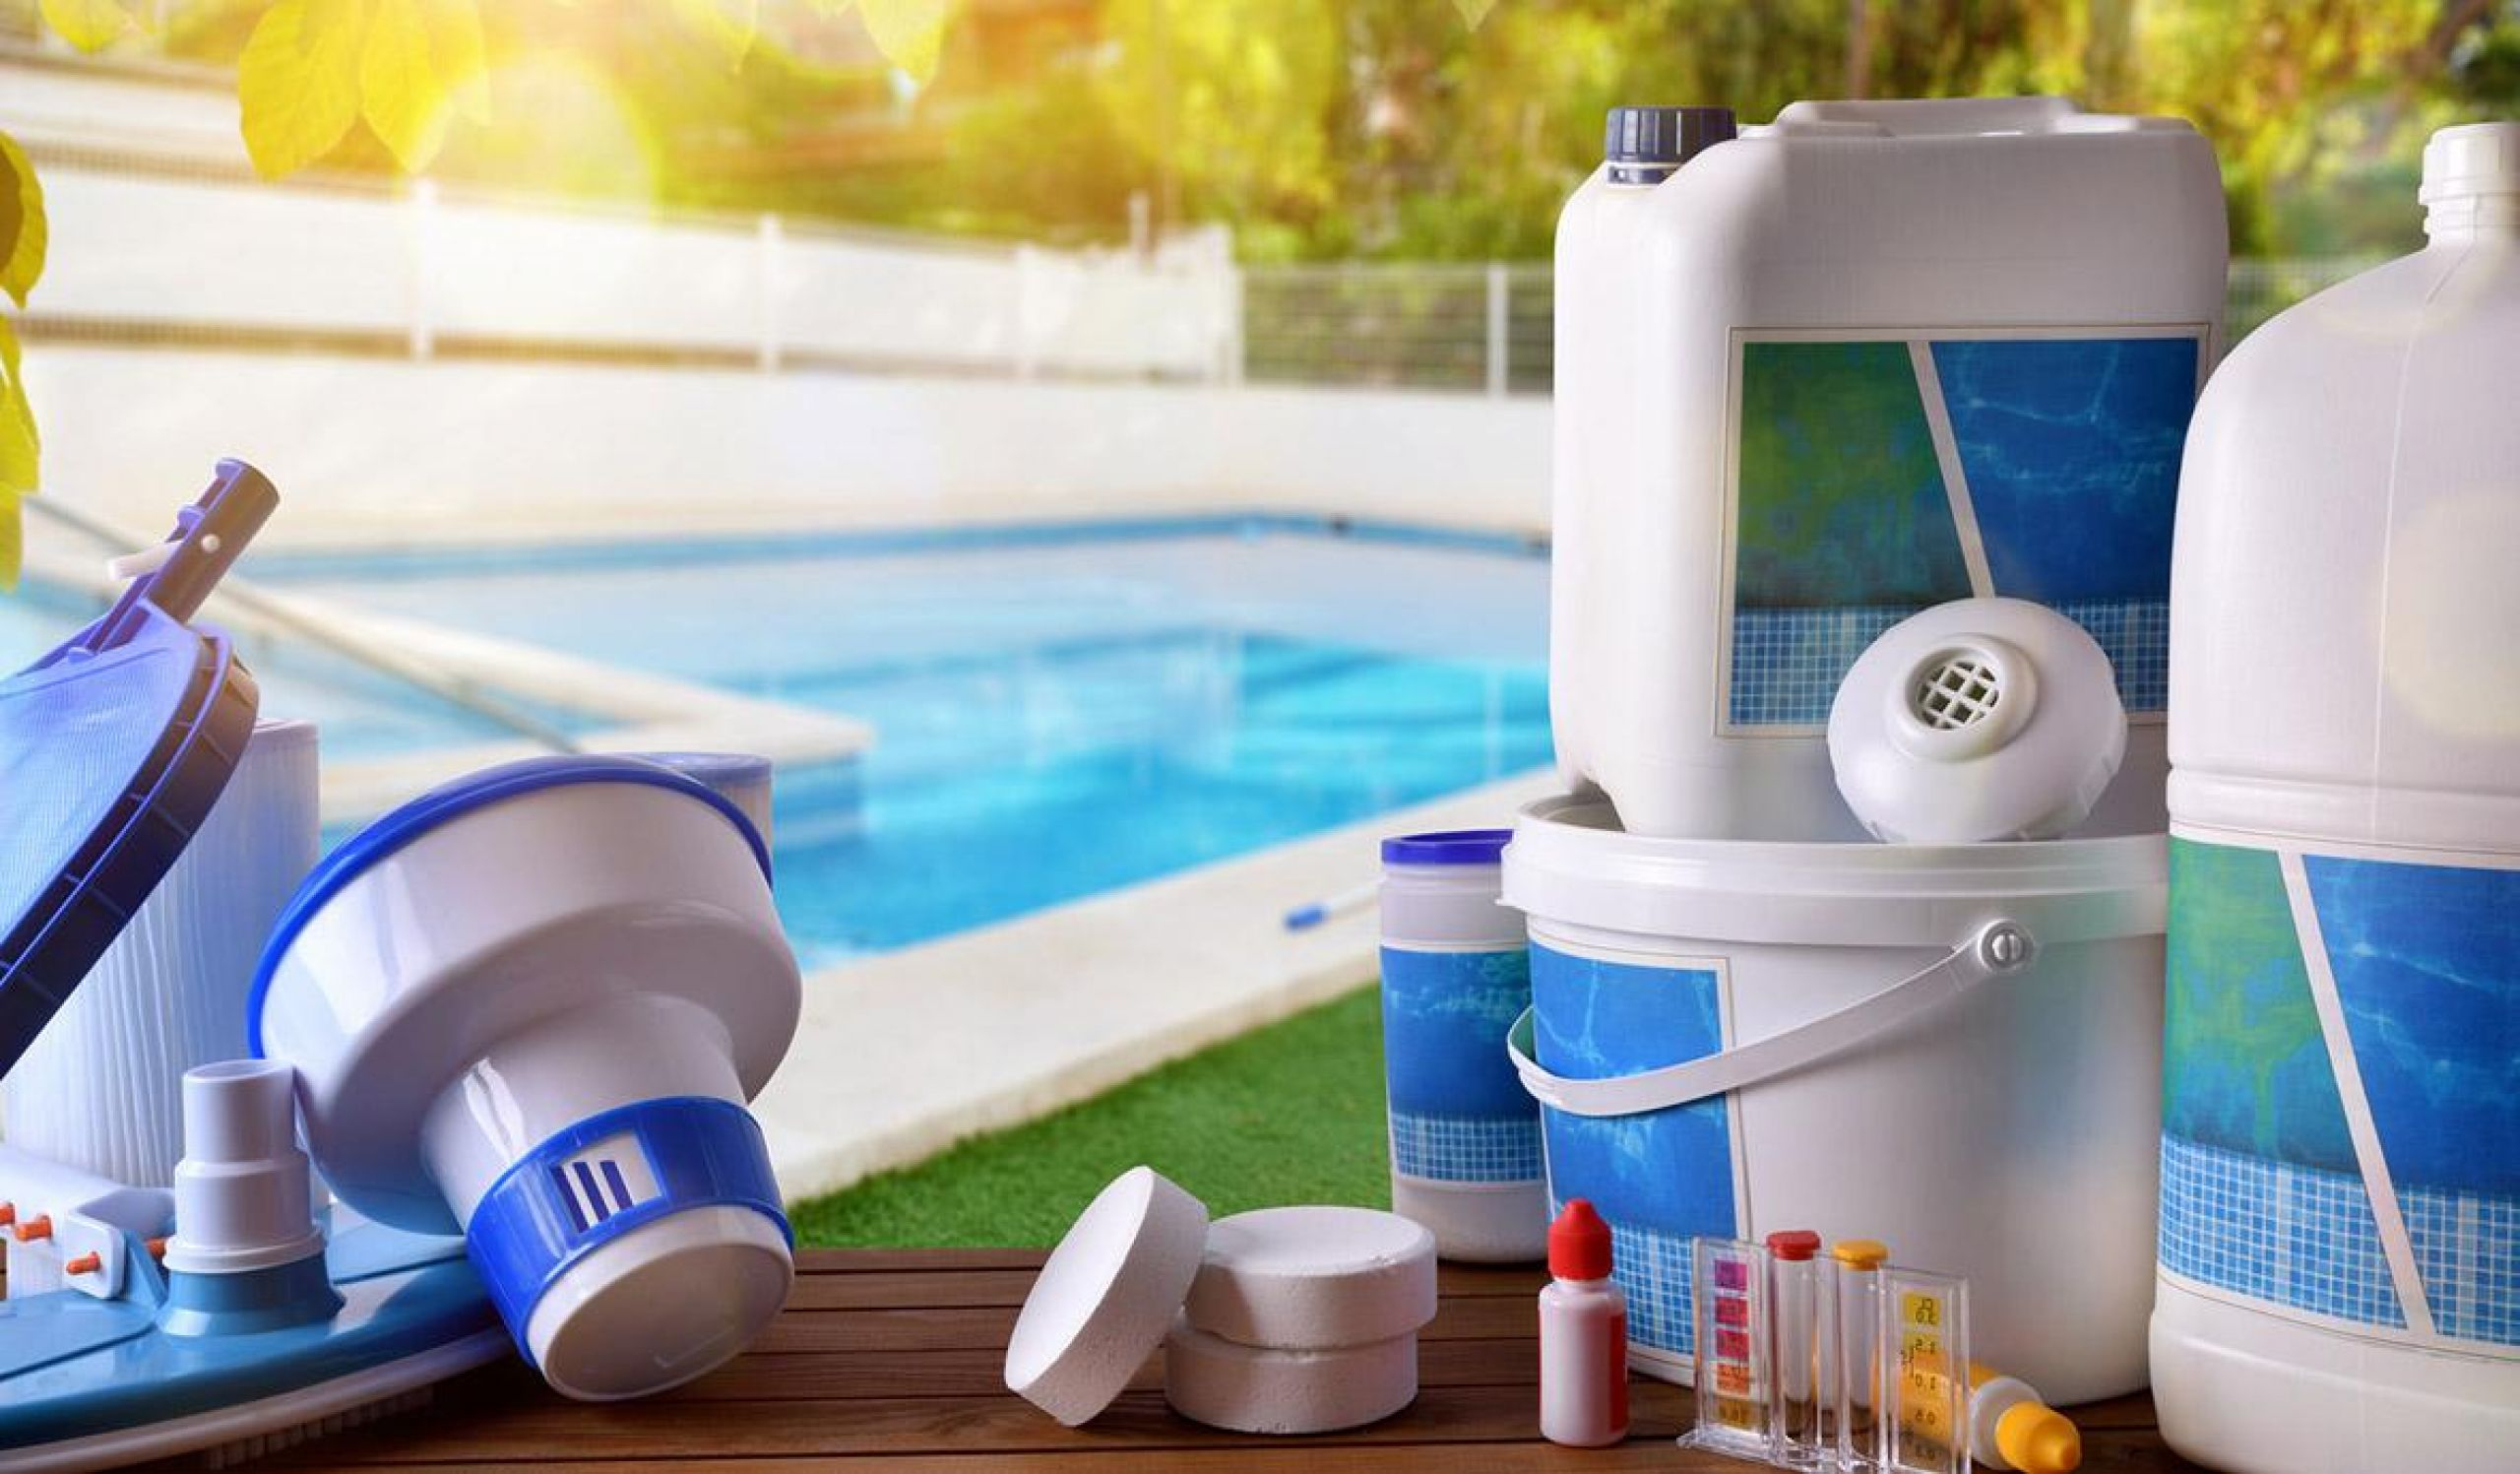 Pools, Plumbing, Heating, Renovations And Pool Equipment ... encequiconcerne Piscine Materiel